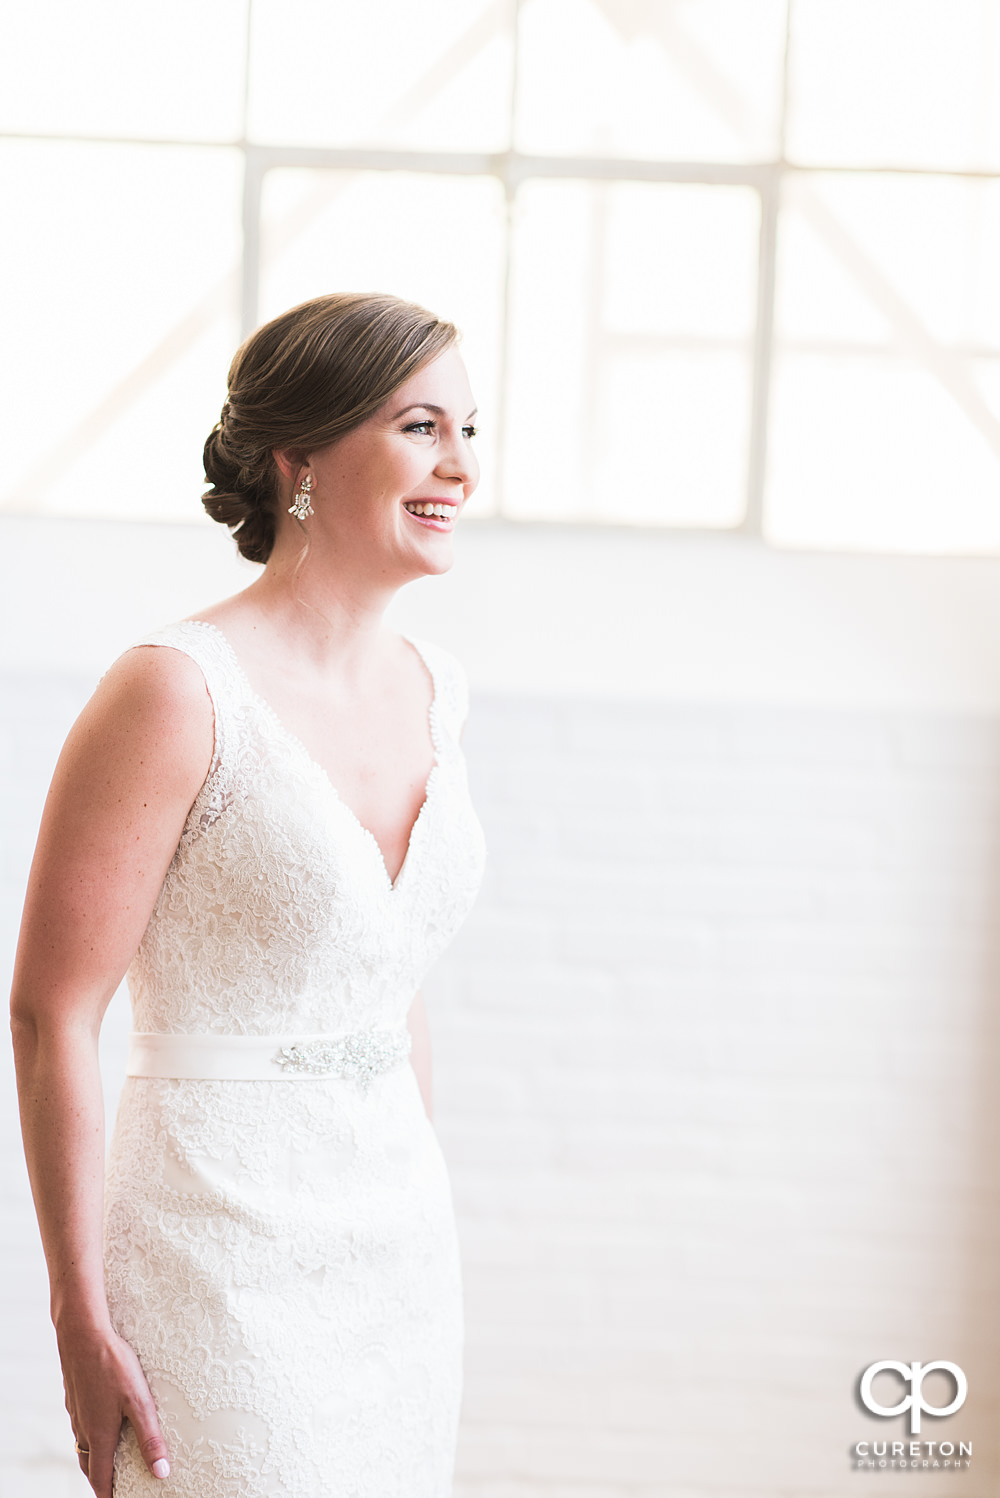 Bride laughing during her pre-wedding bridal session.